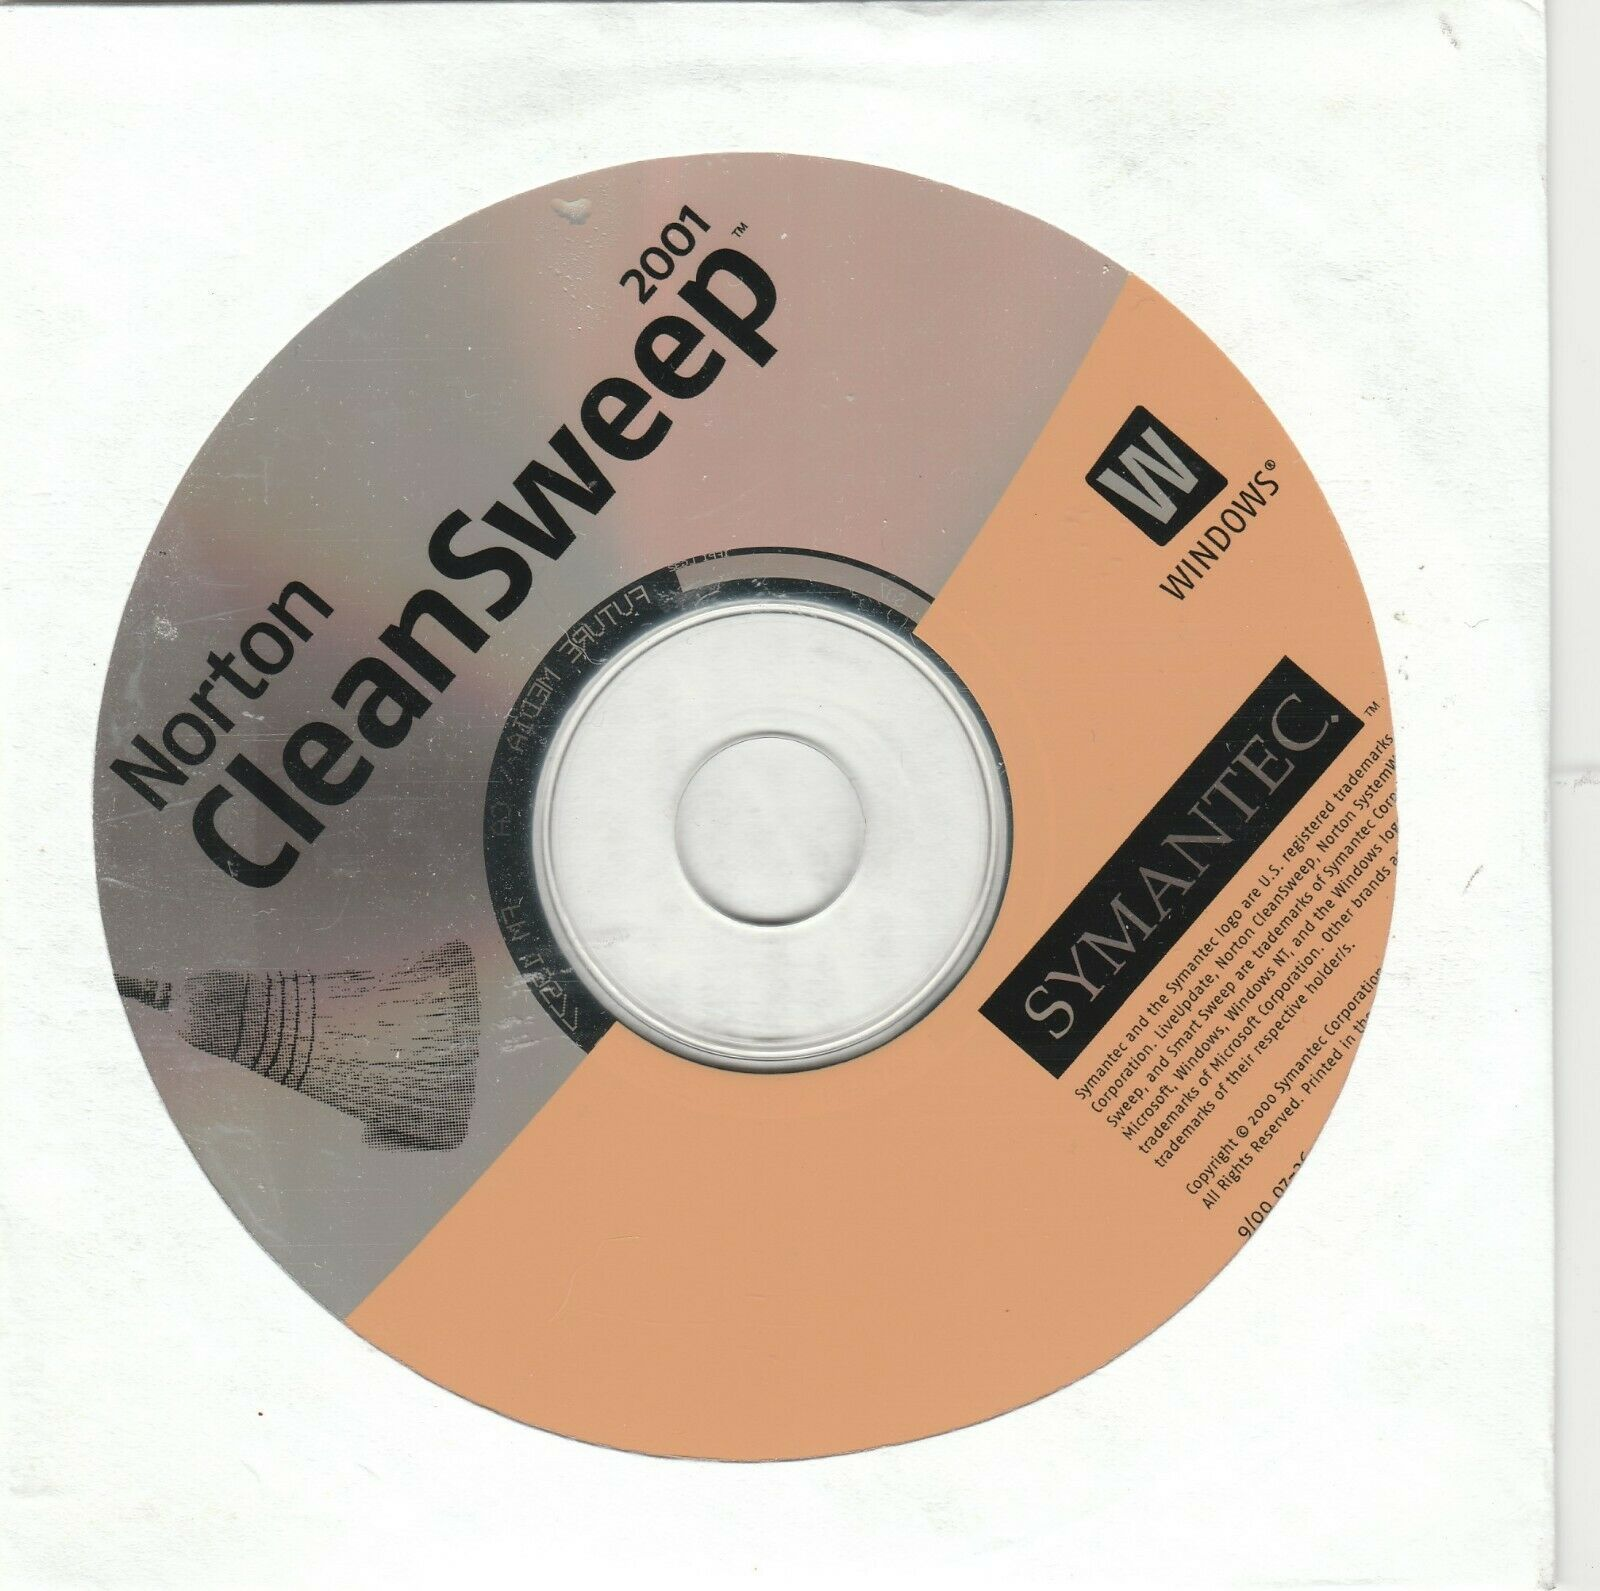 Norton CleanSweep 2001 for Windows - $7.61